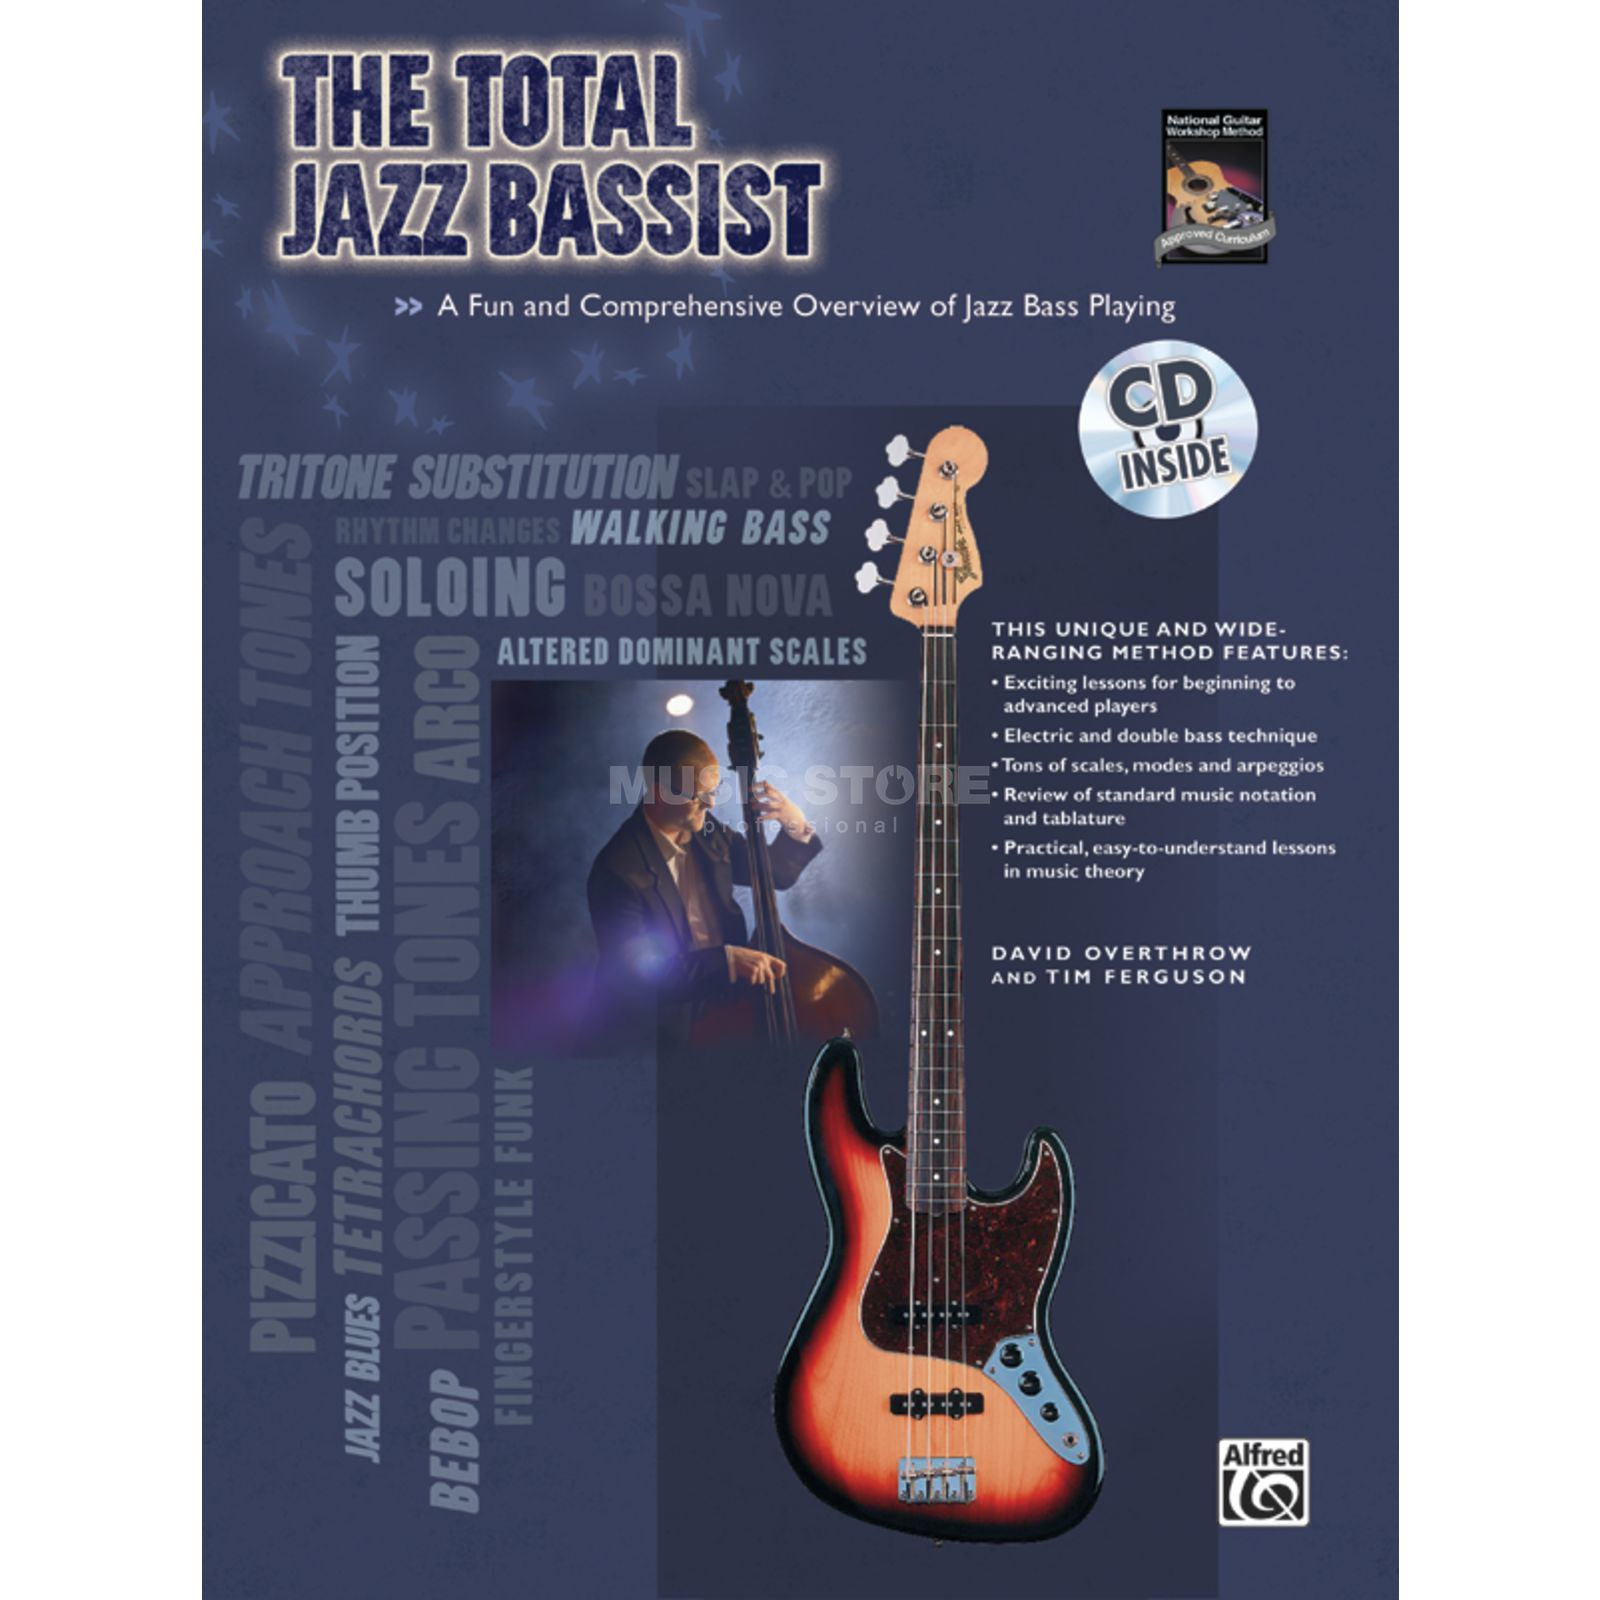 Alfred Music The Total Jazz Bassist David Overthrow, CD Produktbillede